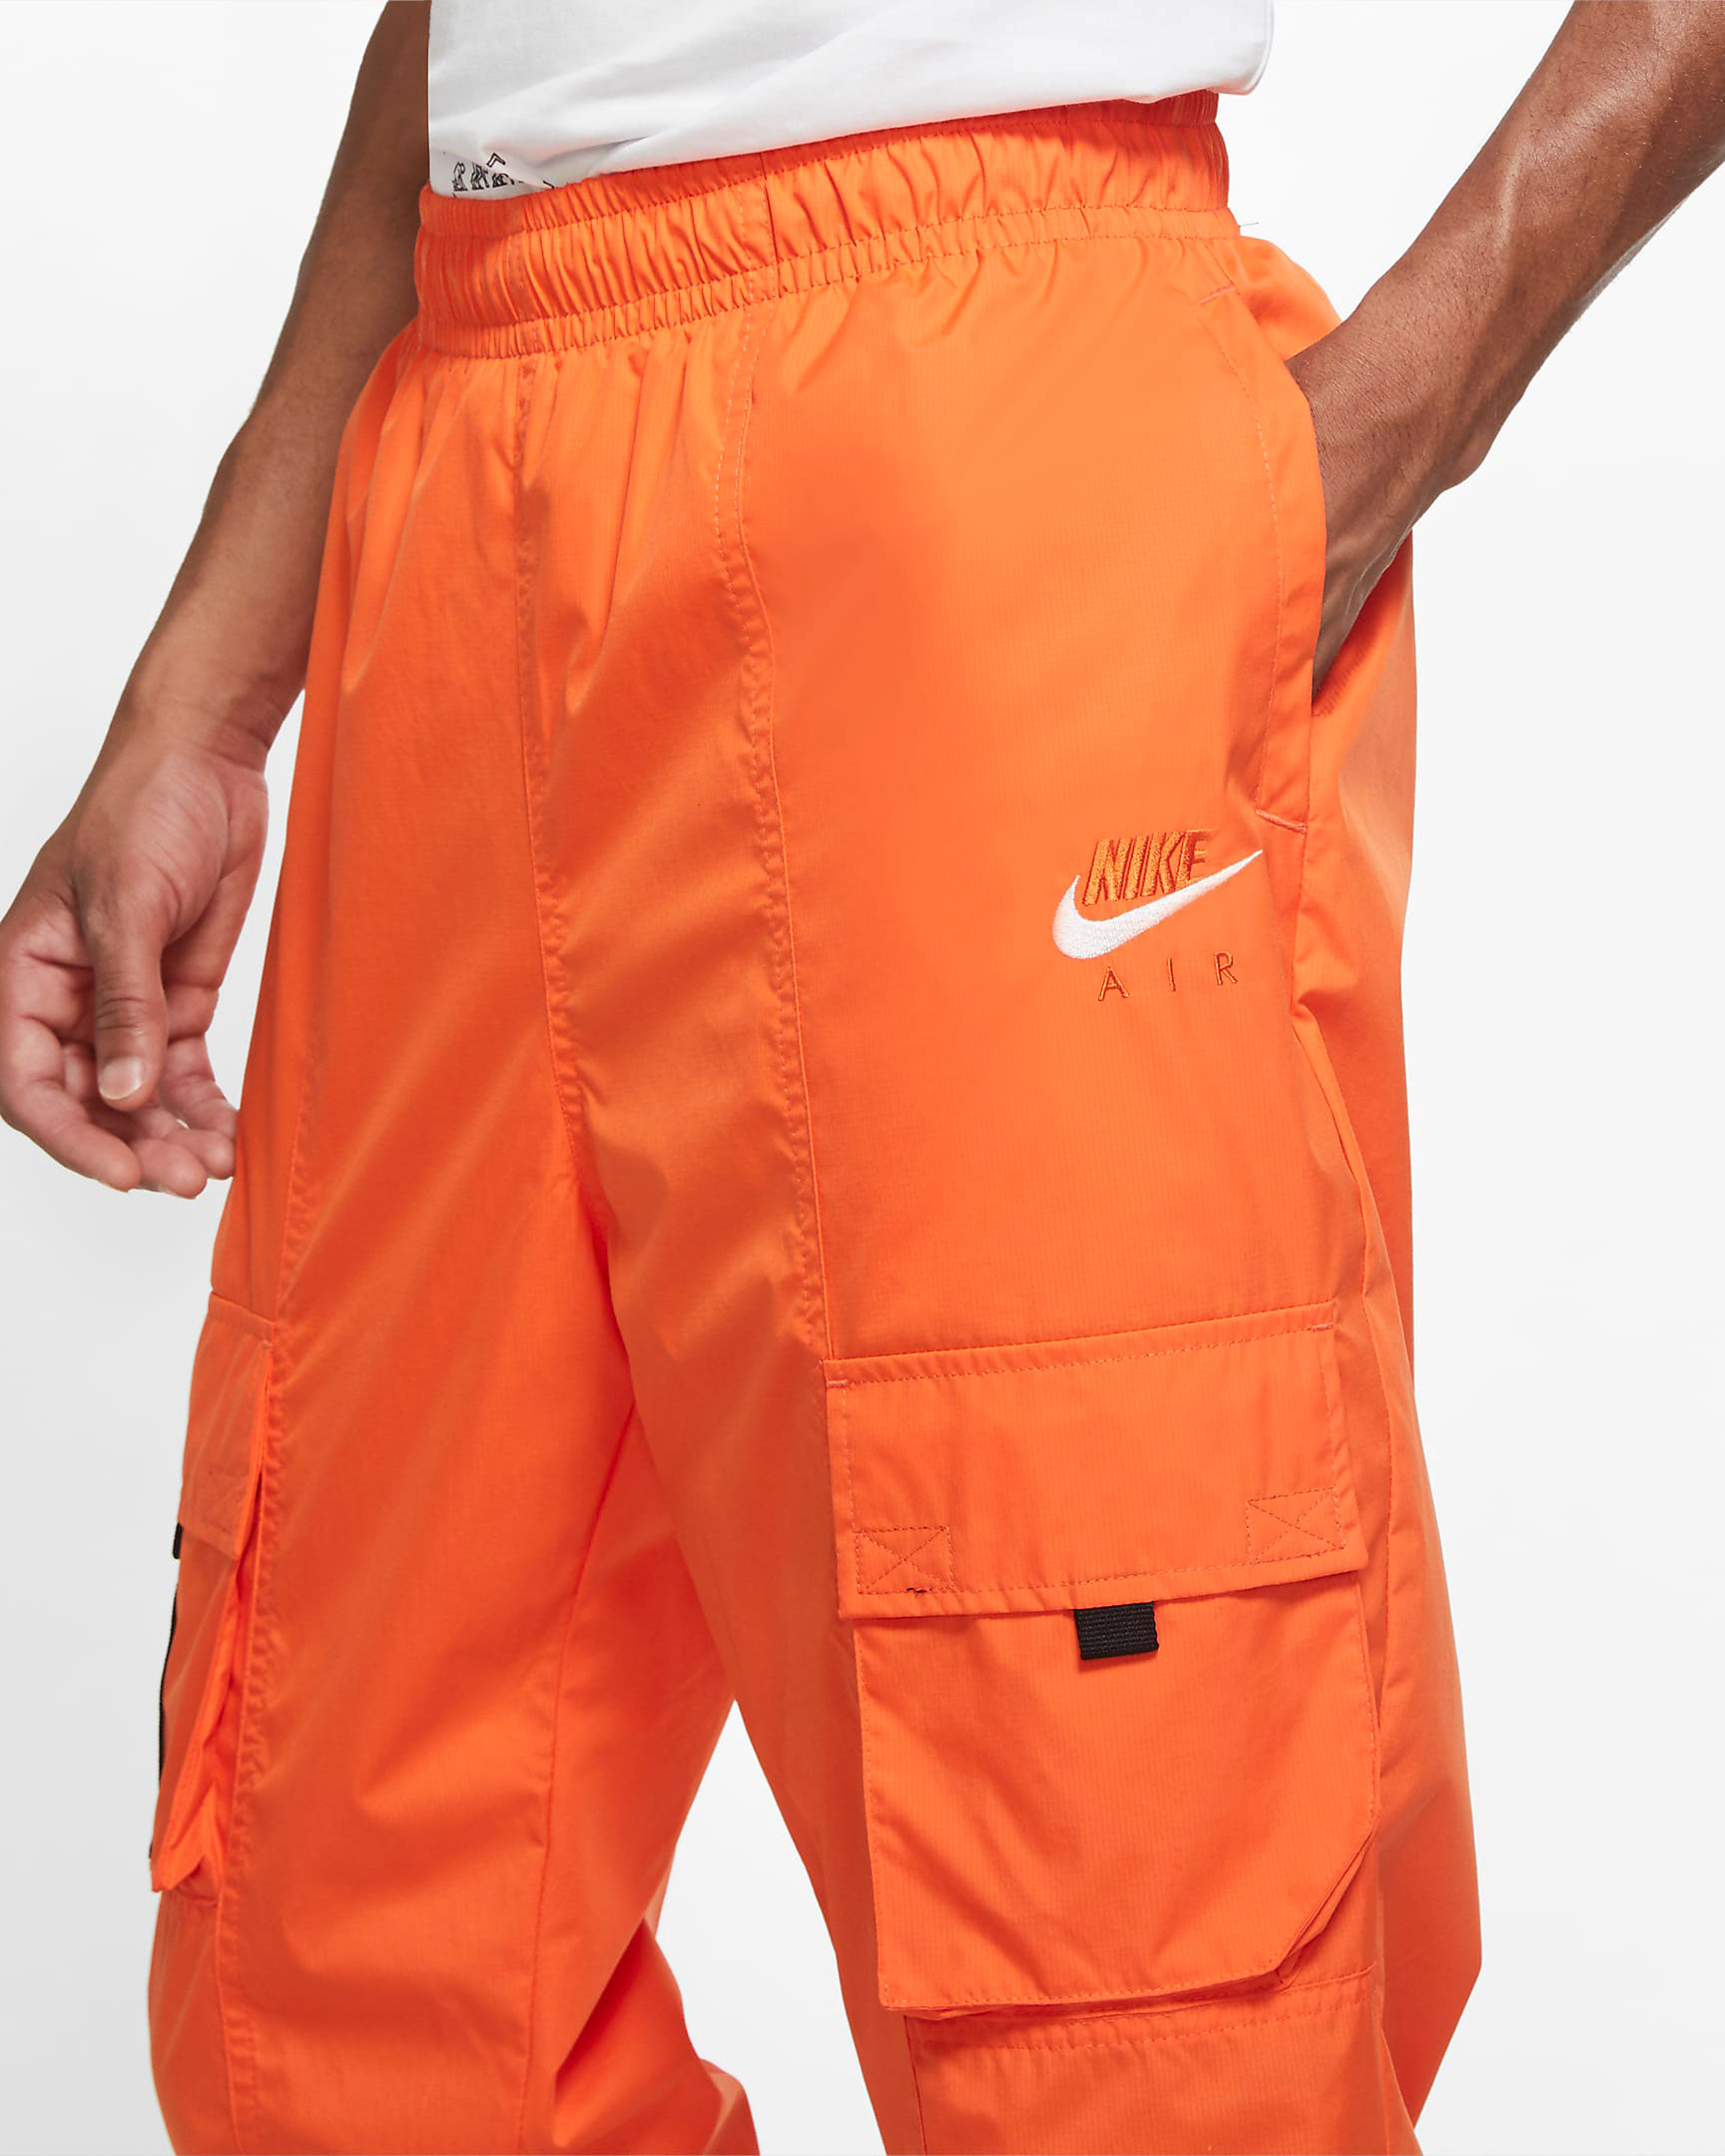 nike-air-cargo-pants-orange-1